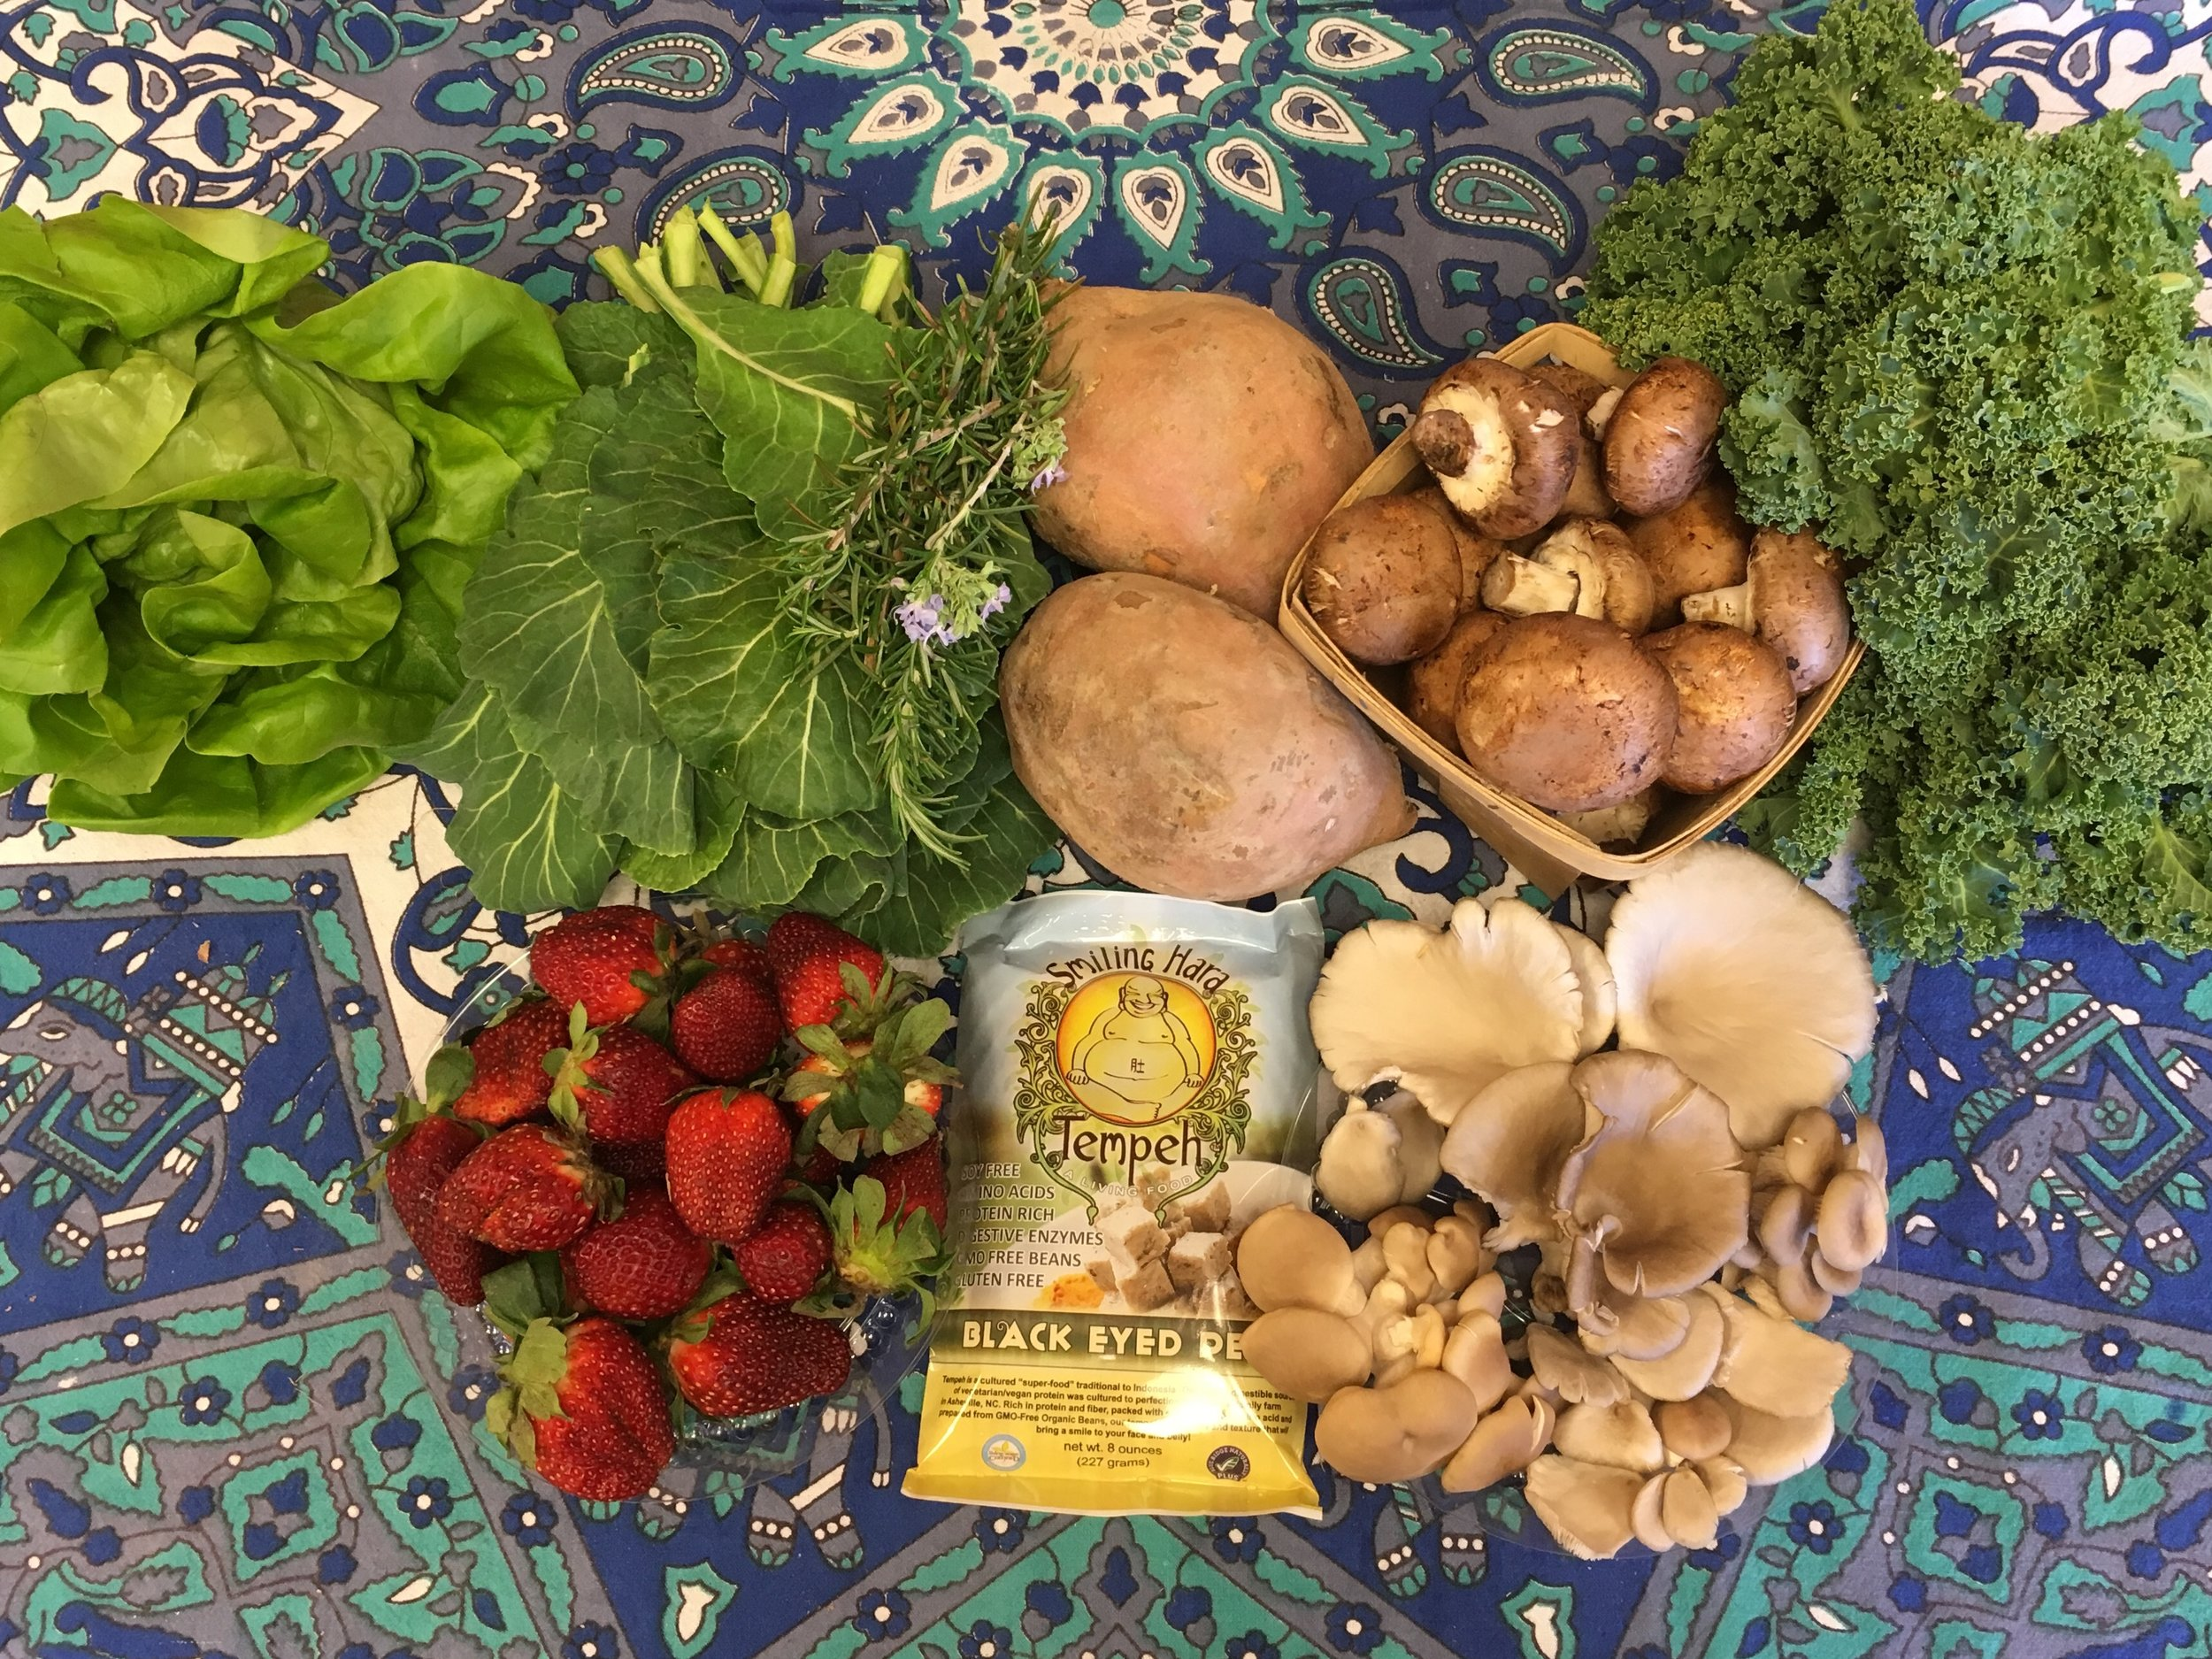 Spice of Life Family  Hydroponic Lettuce, Green Collards, Rosemary, Sweet Potatoes, Cremini Mushrooms, Siberian Curly Kale, Strawberries, Tempeh, Blue Oyster Mushrooms